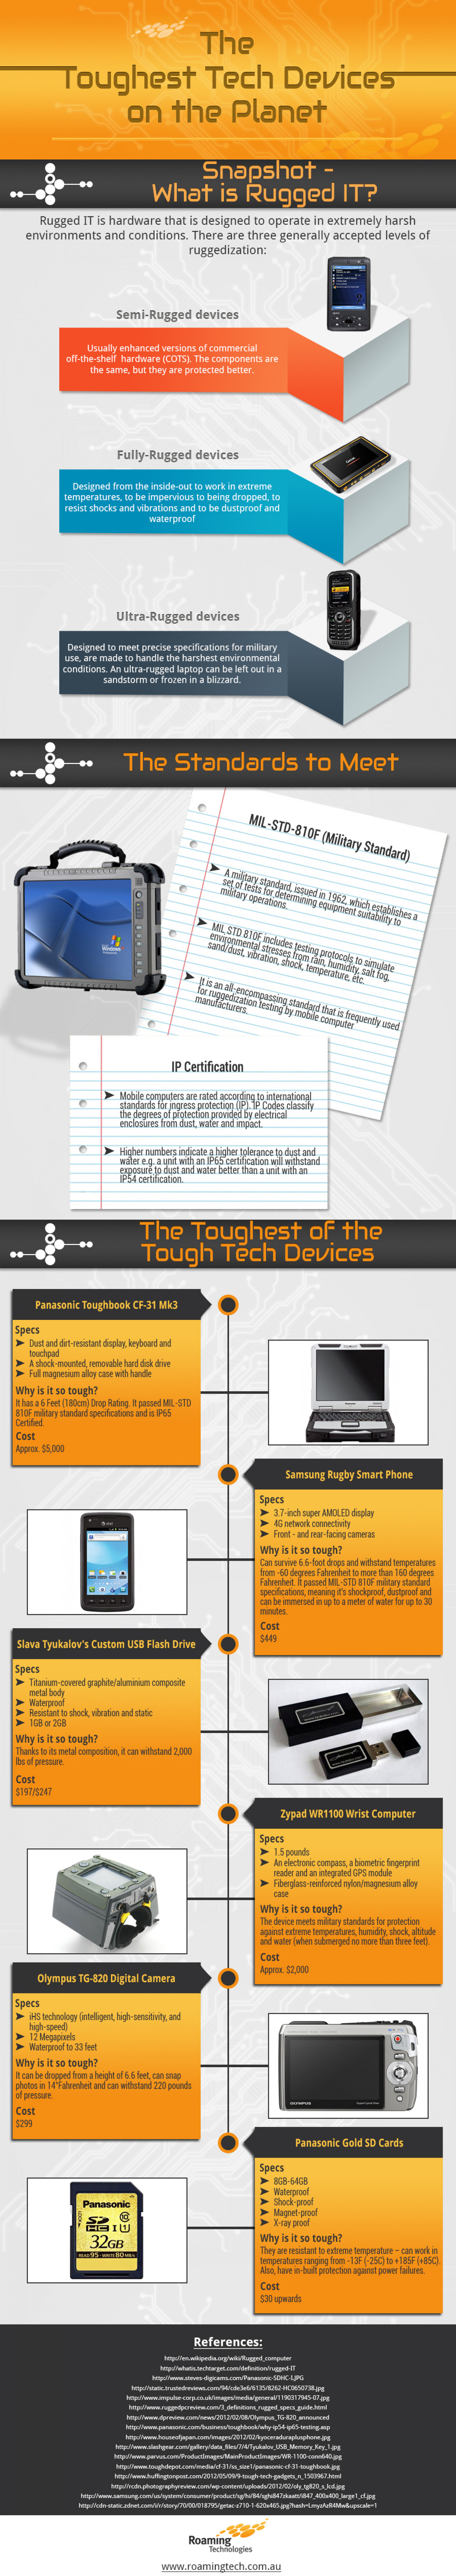 The Toughest Tech Devices on the Planet Infographic